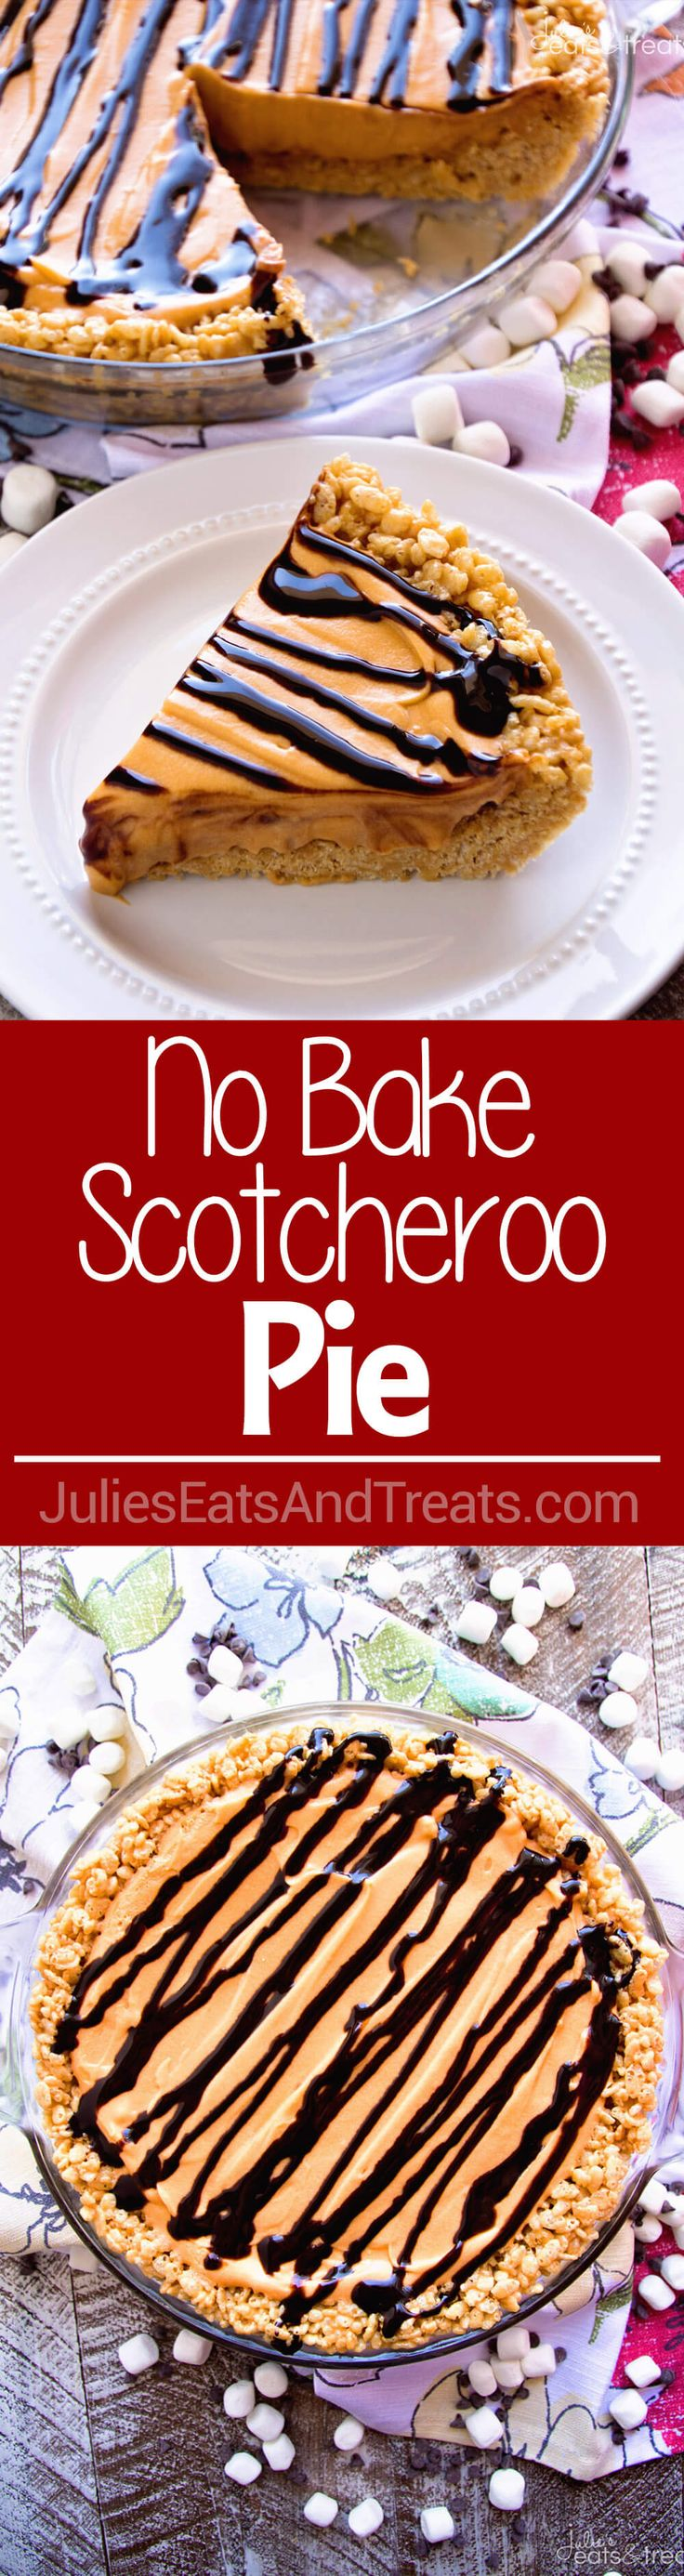 No Bake Scotcheroo Pie Recipe ~ A Delicious Peanut Butter Rice Krispie Pie Crust Topped with Butterscotch Pudding and Topped with Chocolate! ~ http://www.julieseatsandtreats.com